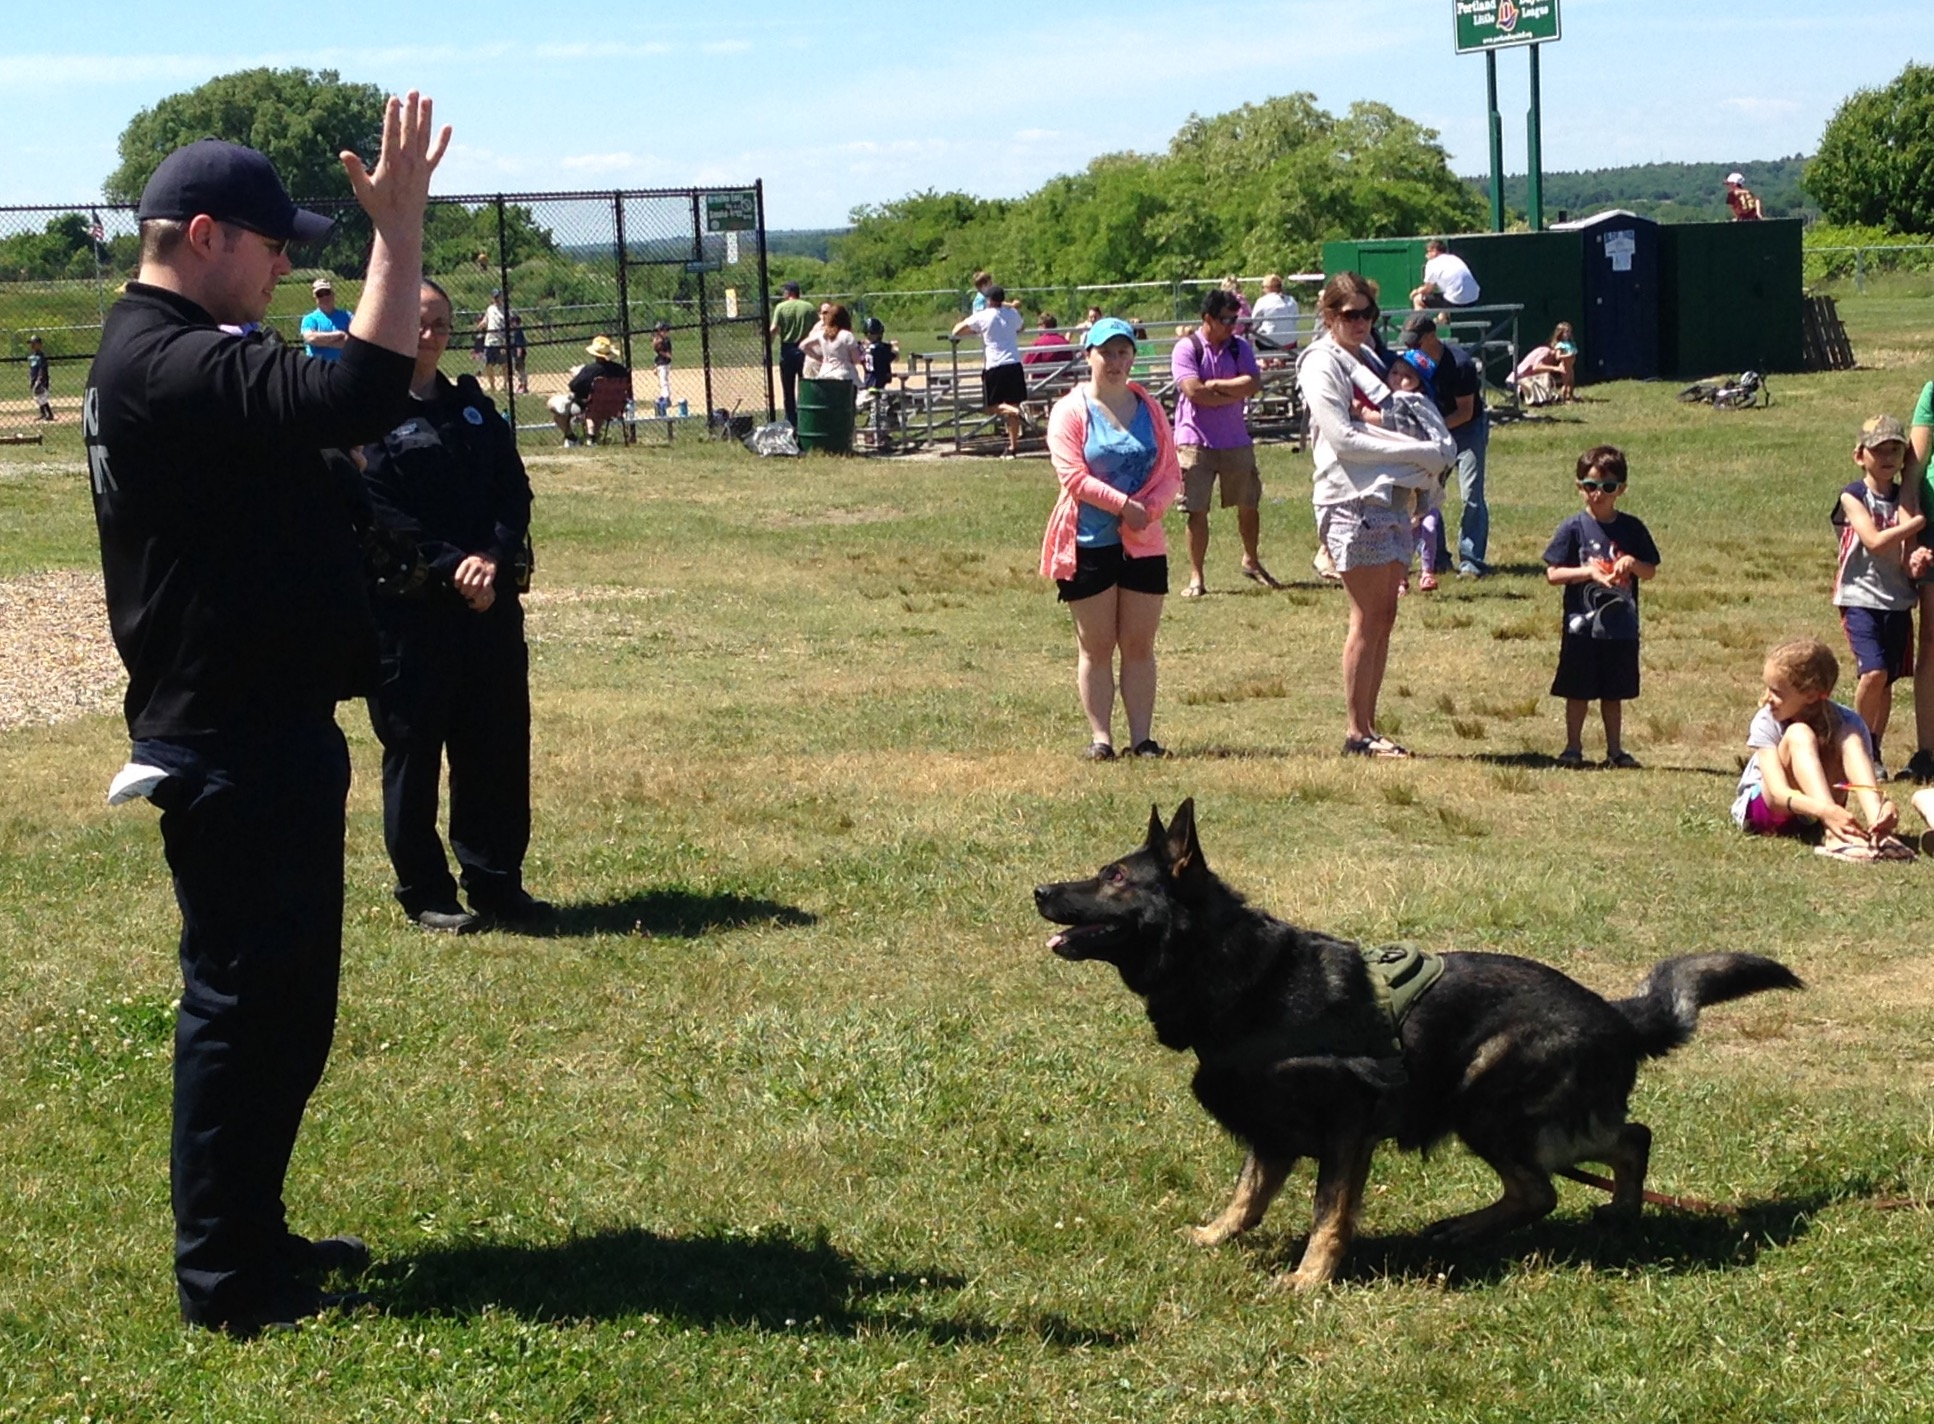 Officer Finely and Mako demonstrate K9 training.